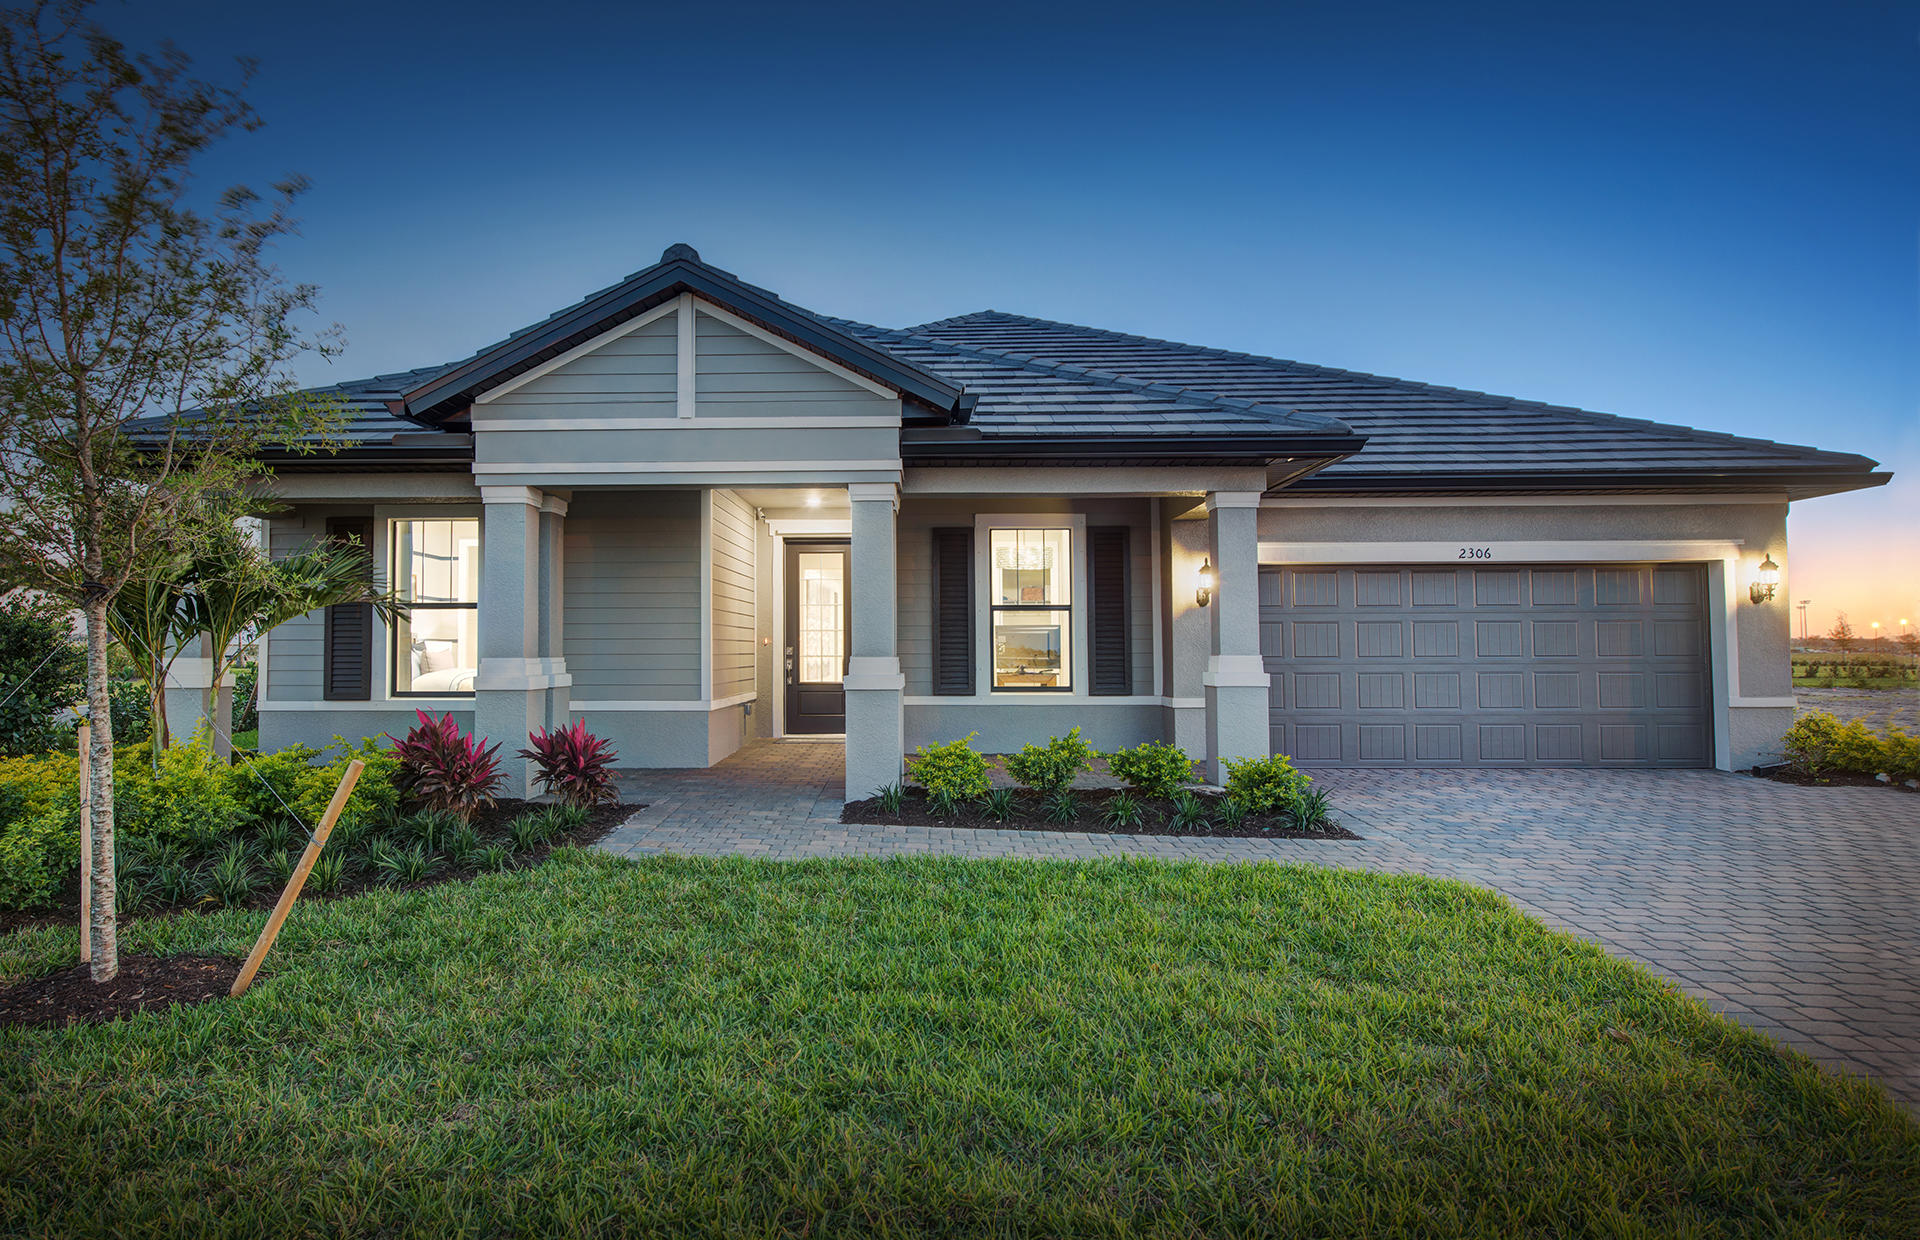 Orange Blossom Ranch by Pulte Homes image 0